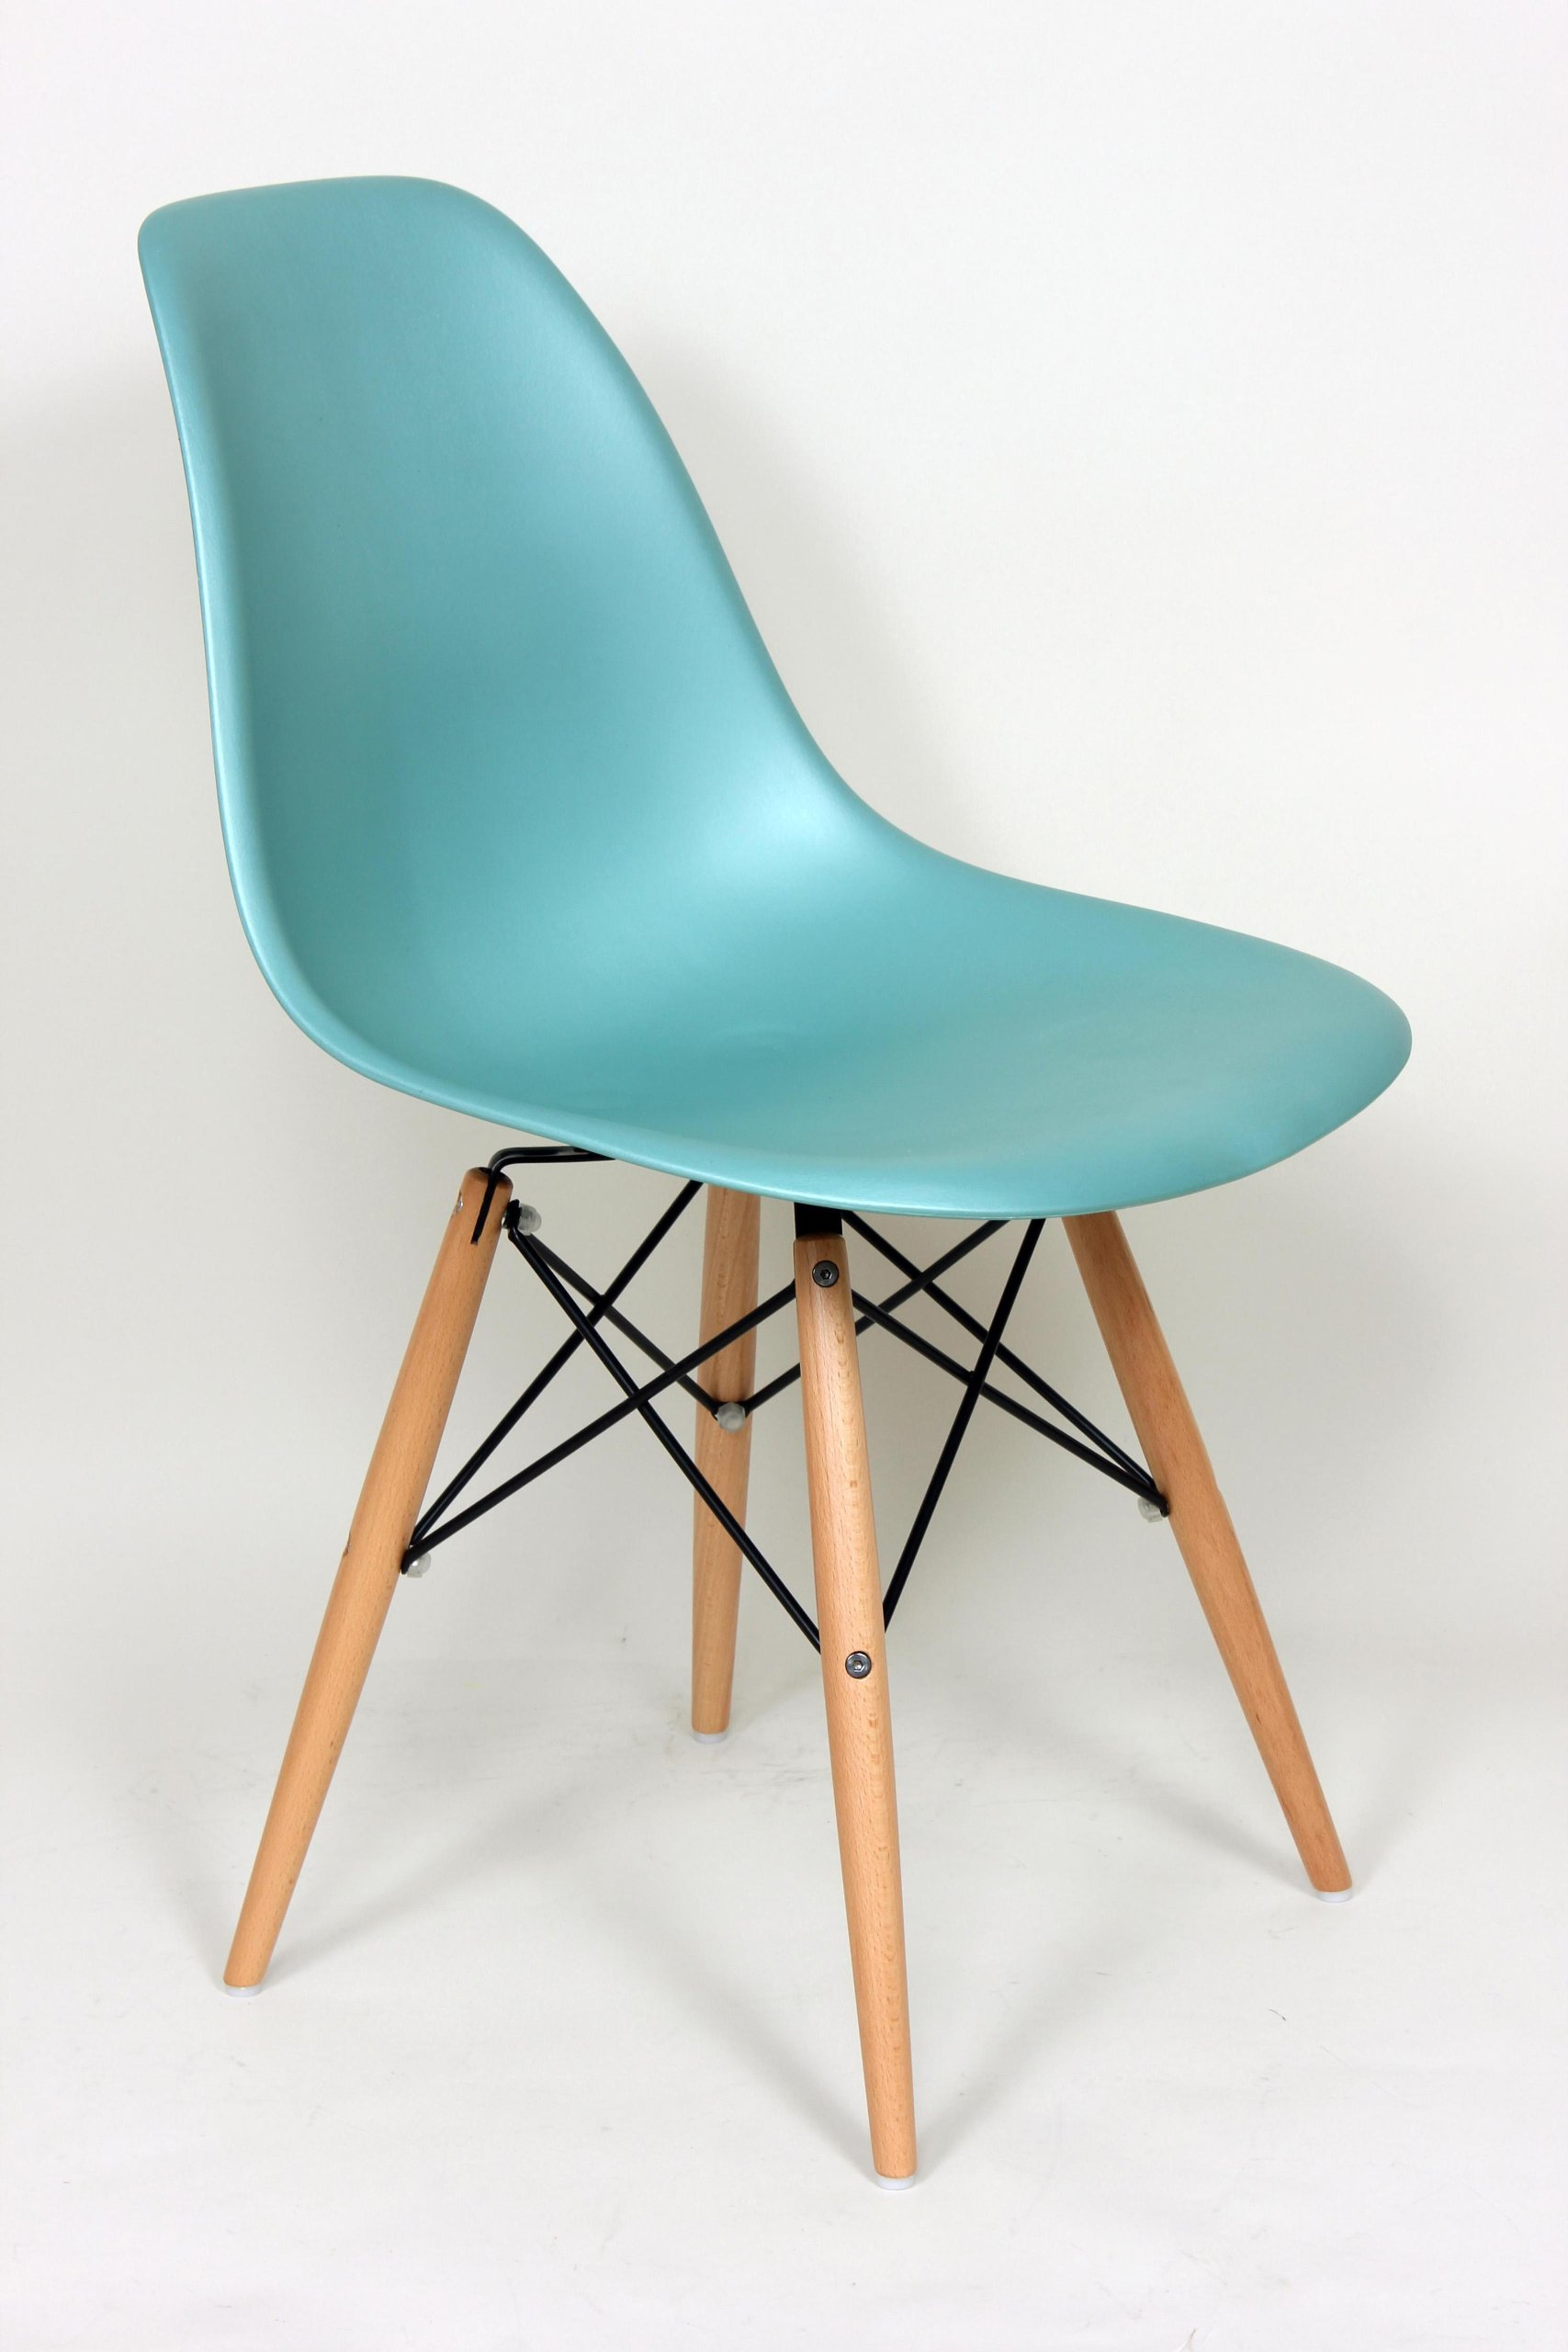 "Stilnovo Mid-Century Eiffel Dining Chair, Blue - 32"" x 21"" x 18.5"" This stylish chair has many uses in the home, office, cafe, reception area, or training room. Wooden Dowel Legs - kitchen-dining-room-furniture, kitchen-dining-room, kitchen-dining-room-chairs - 81QFmatAh6L -"